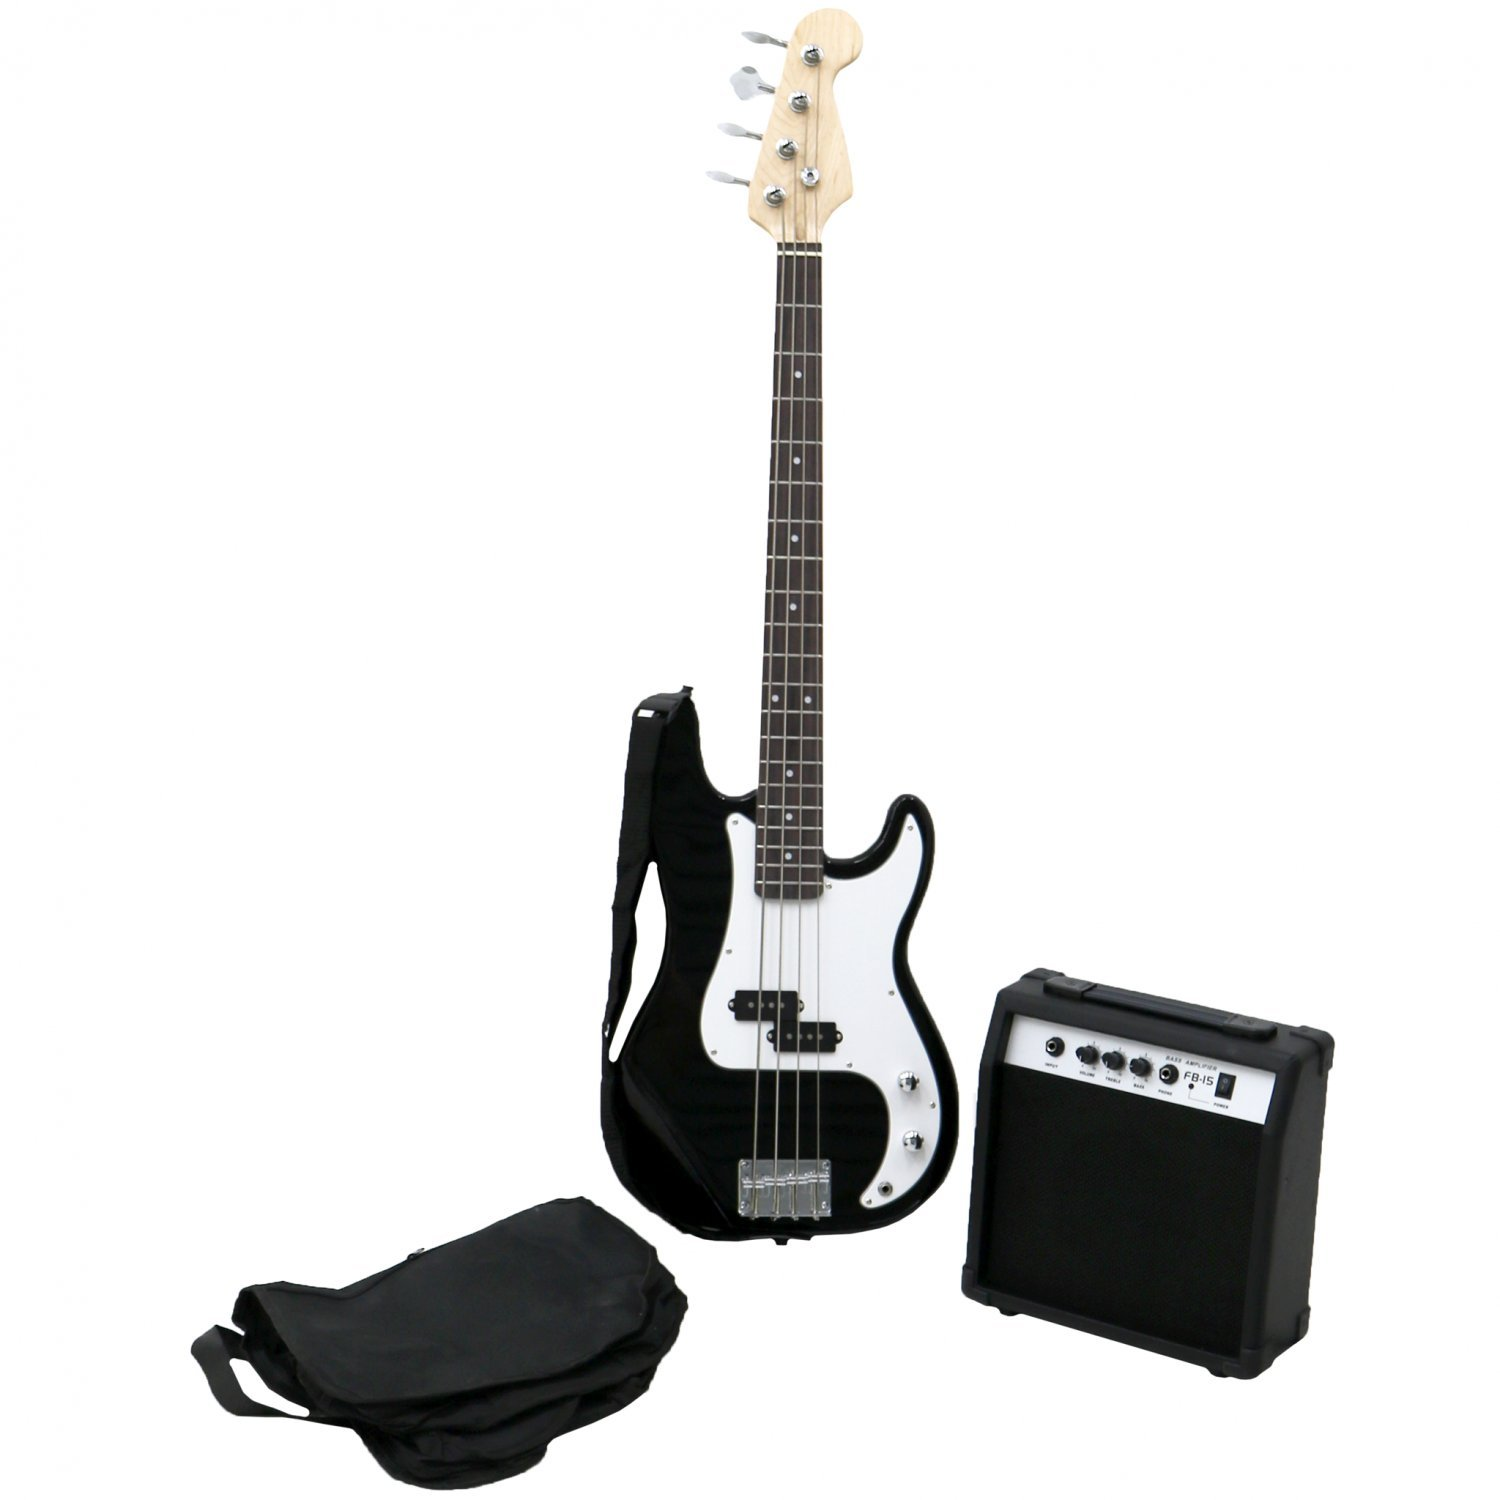 PB Precision Style Black 4 String Electric Bass Guitar & 15W Amp